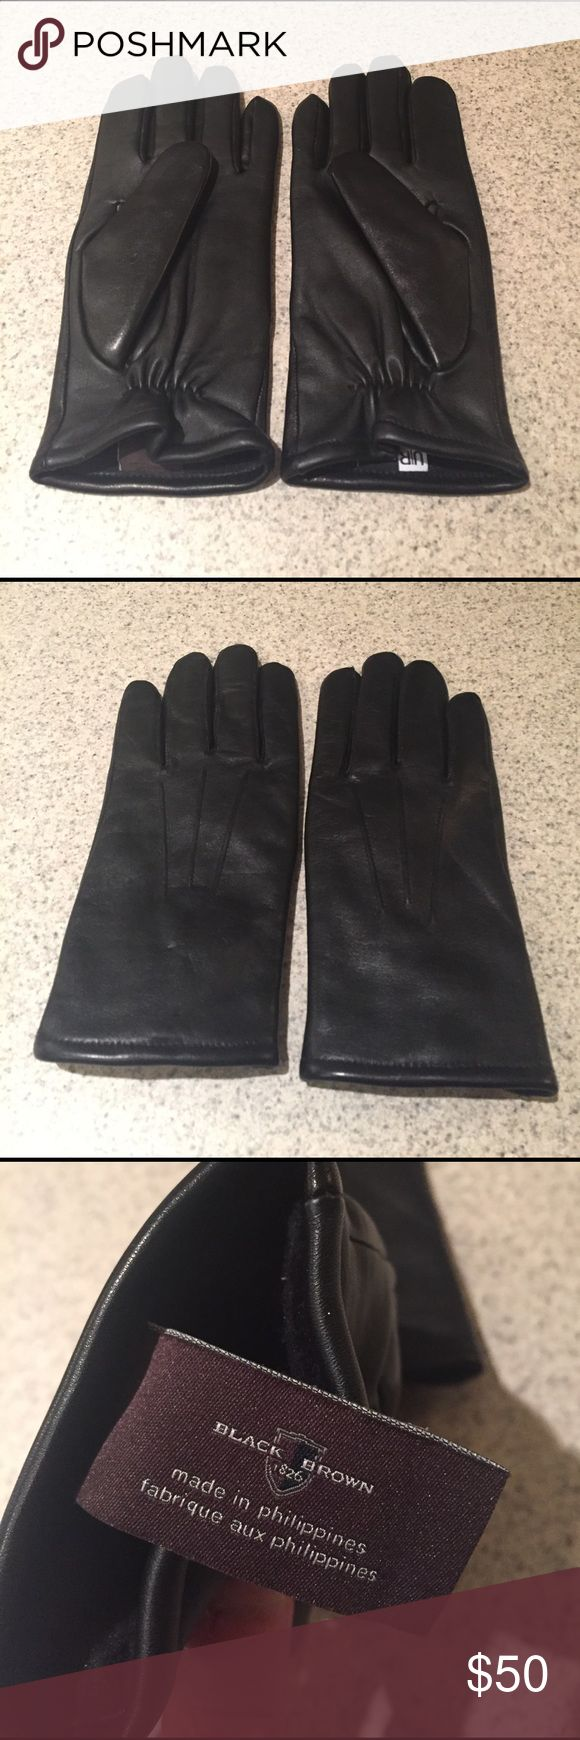 Black leather gloves with red buttons - Black Brown Leather Gloves